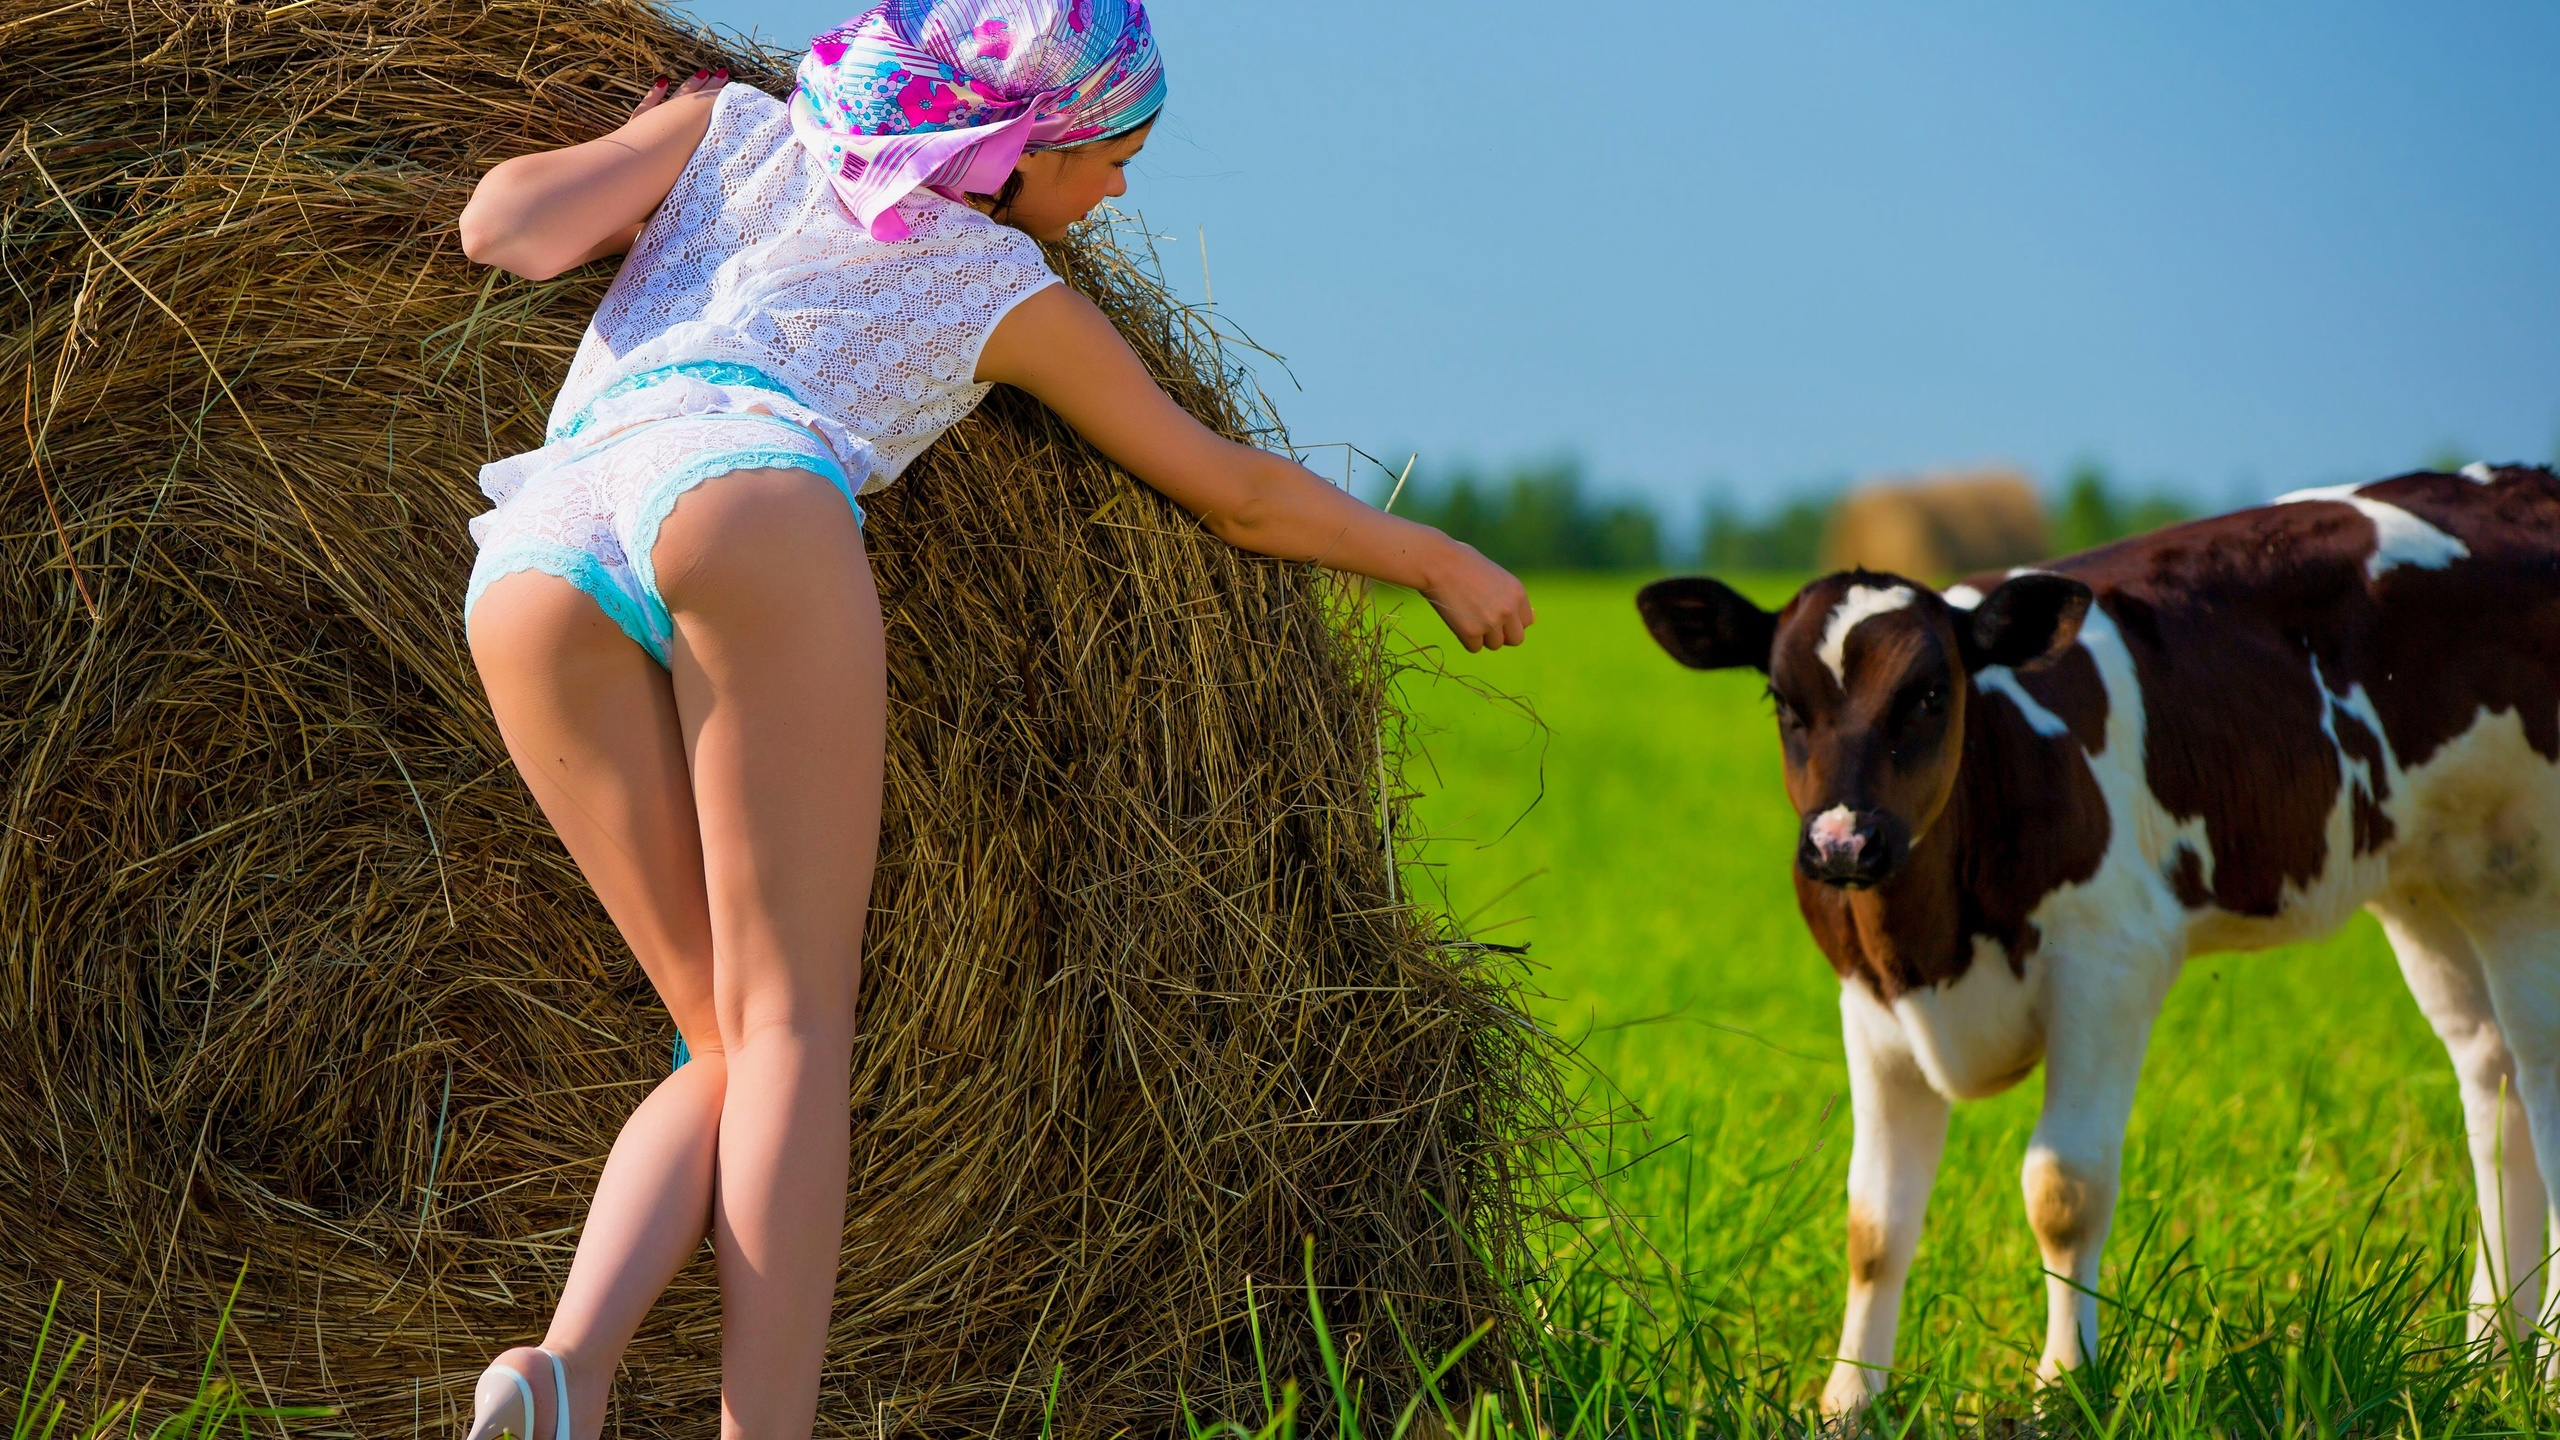 Erotic farm girl poses naked to show hot tits shaved pussy on a hay bale